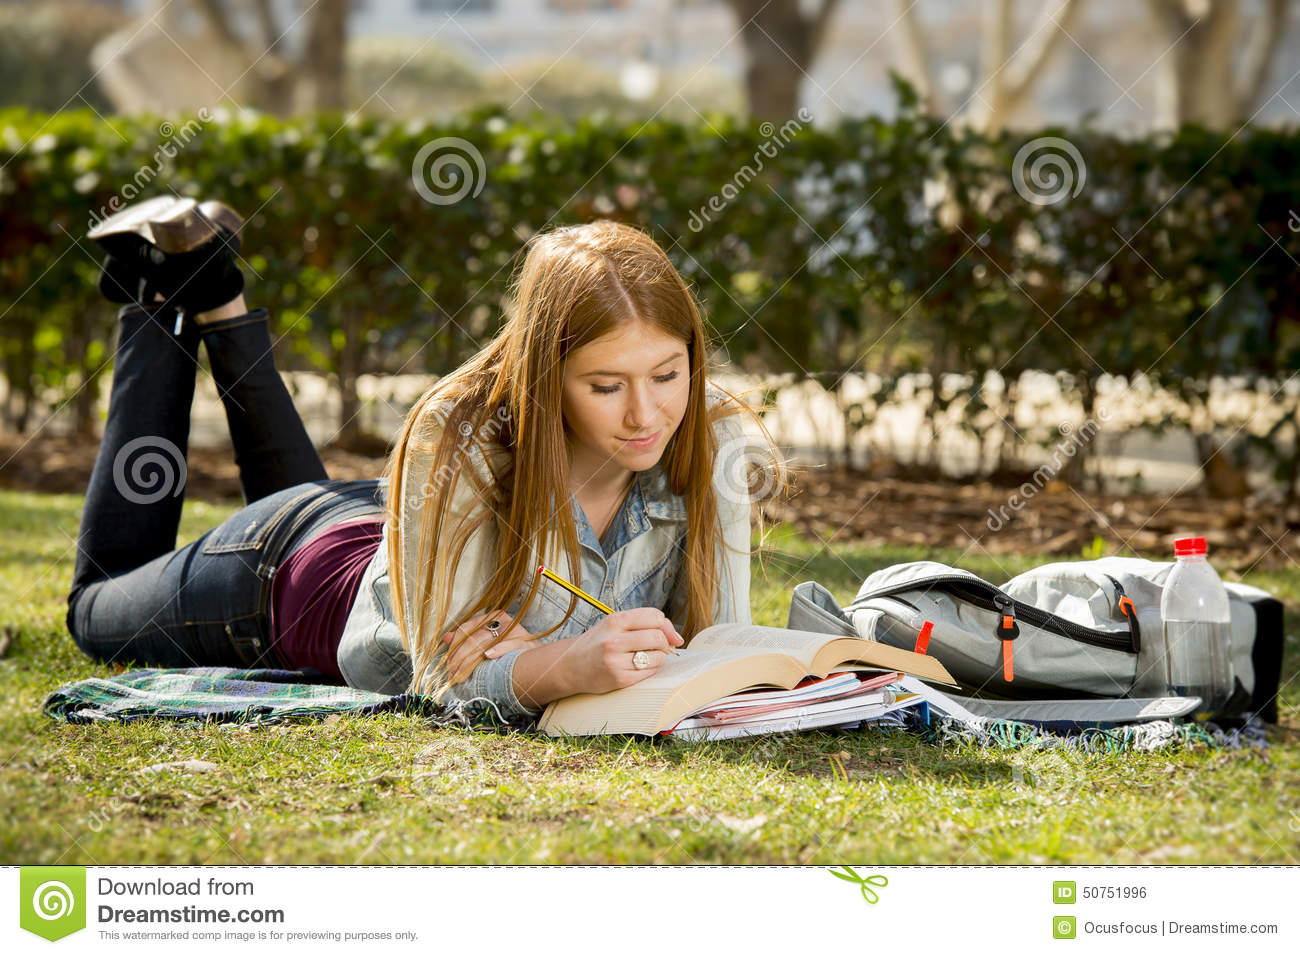 Young Beautiful Student Girl On Campus Park Grass With